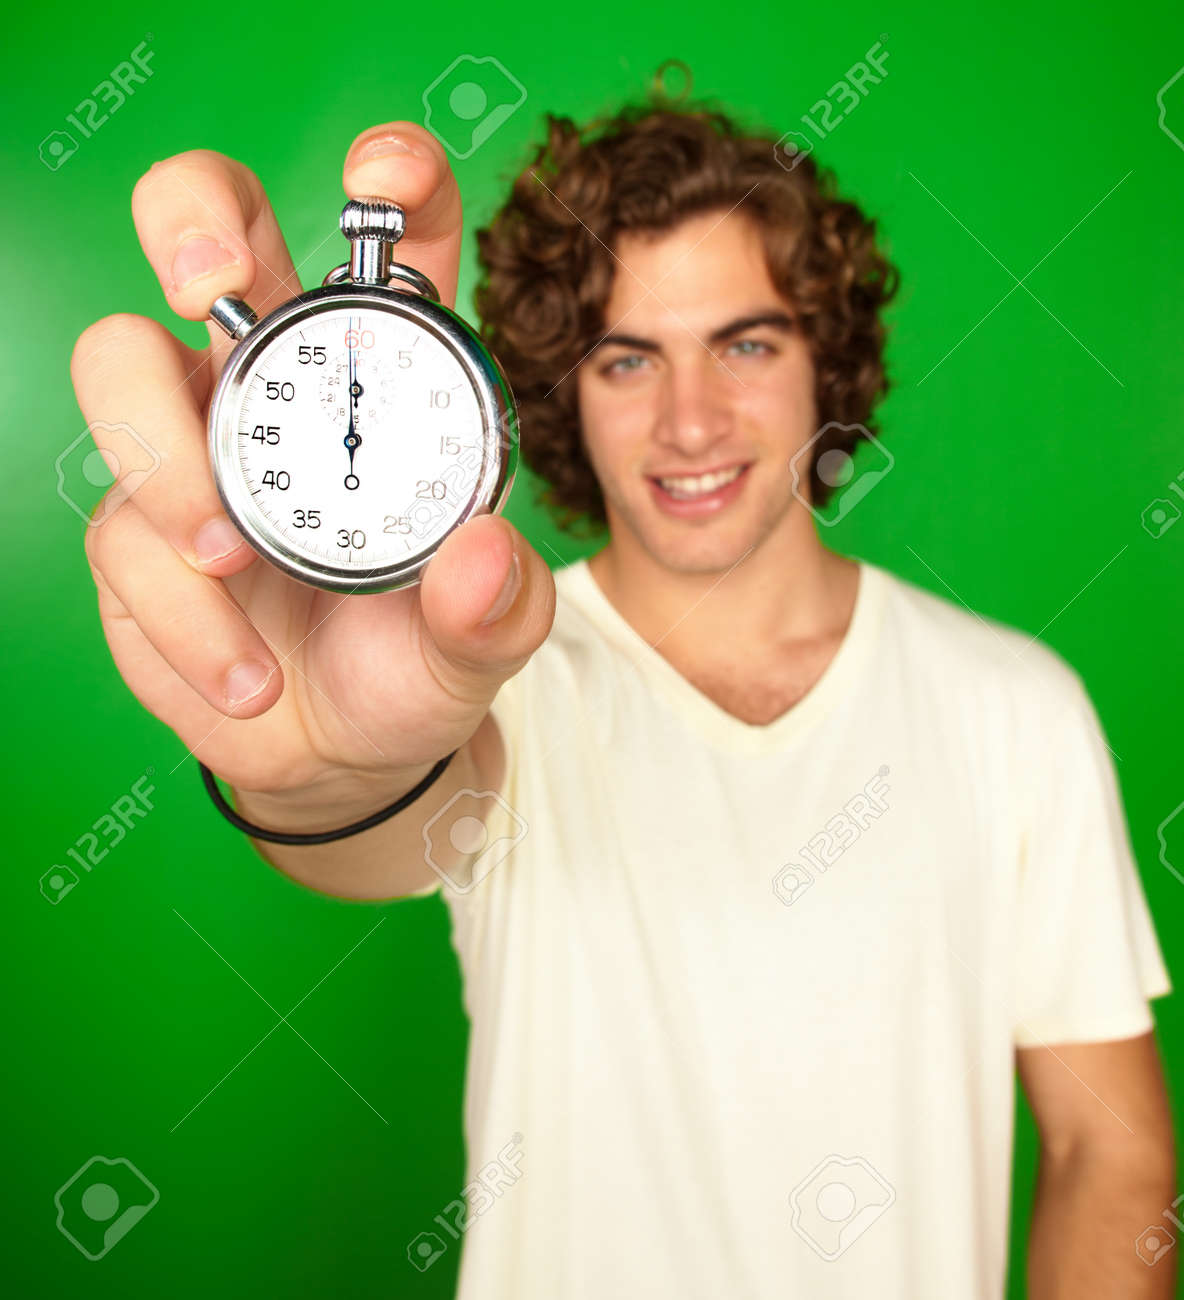 Man Holding Stopwatch On Green Background - 16671743